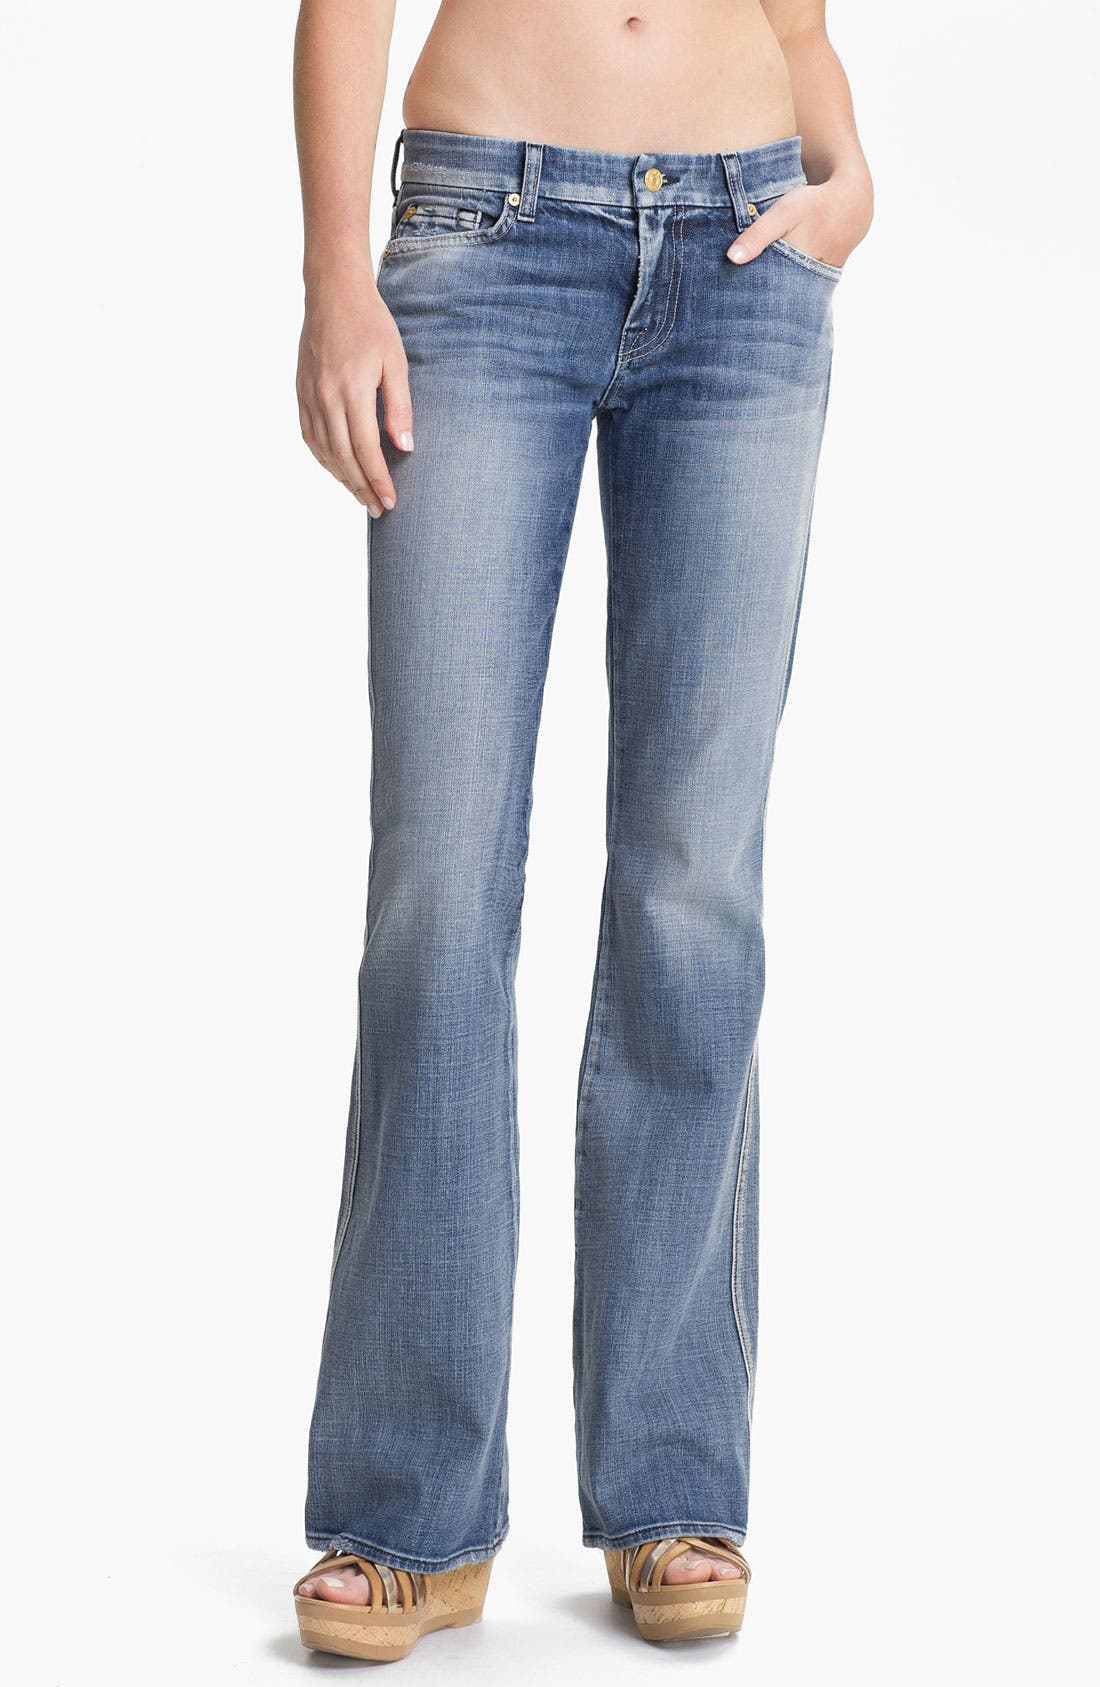 Alternate Image 1 Selected - 7 For All Mankind® 'A-Pocket' Bootcut Stretch Jeans (Pure Light Blue)